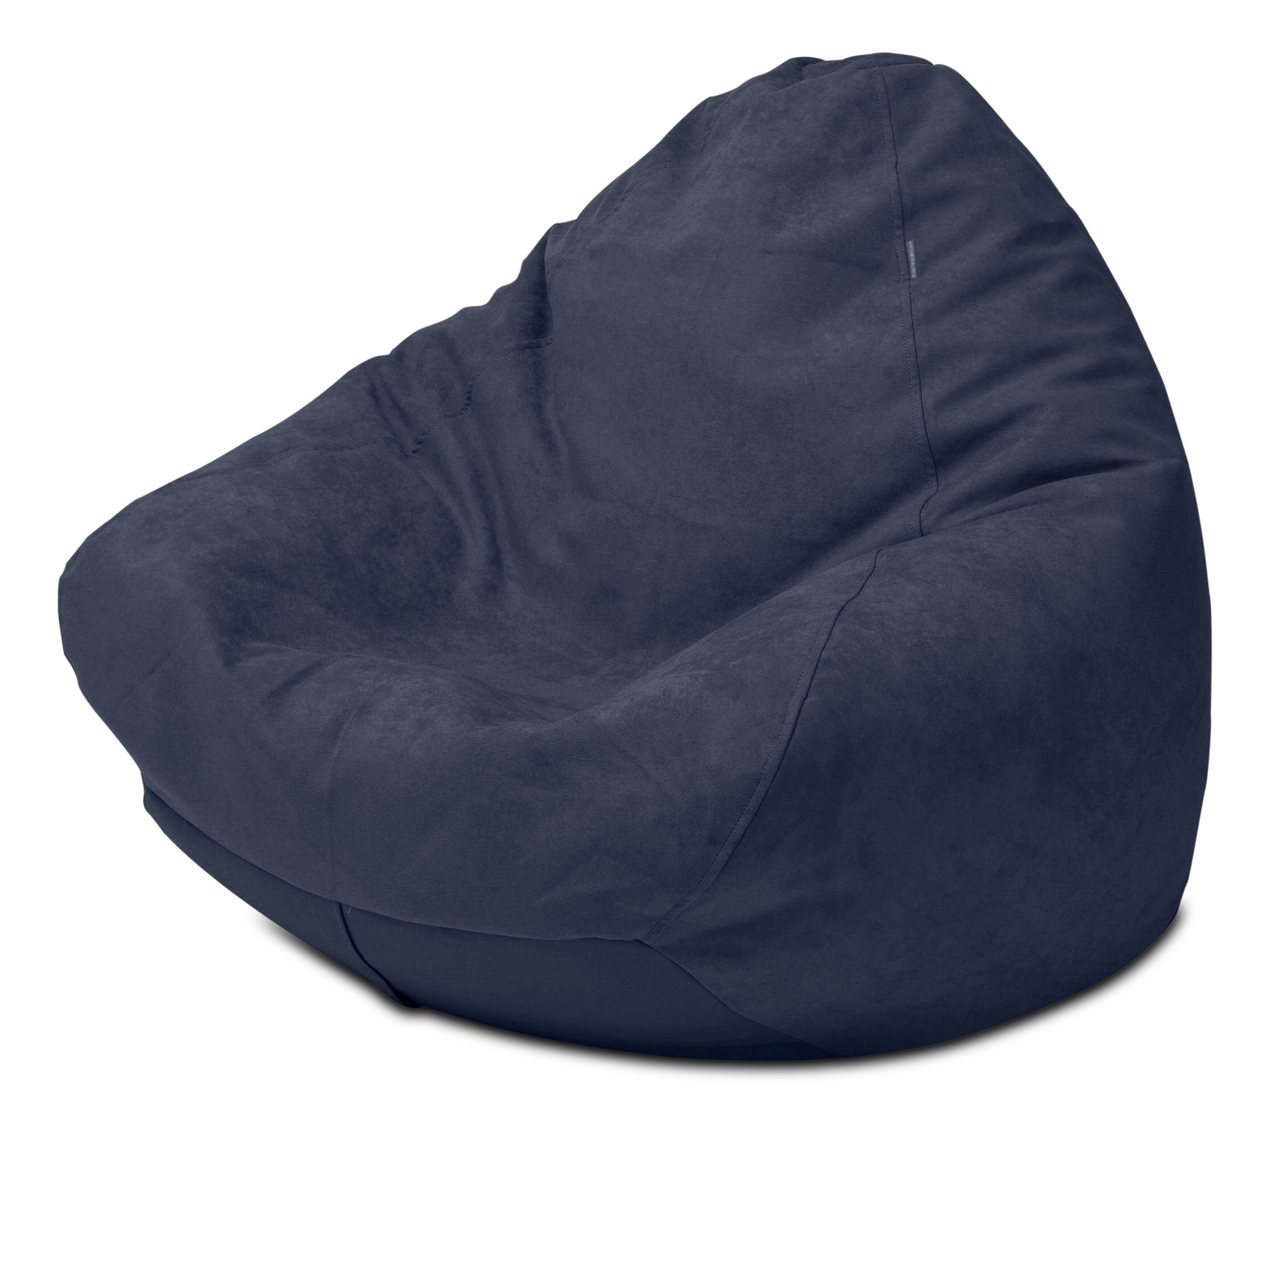 Warwick Macrosuede Queen Size Bean Bag in storm